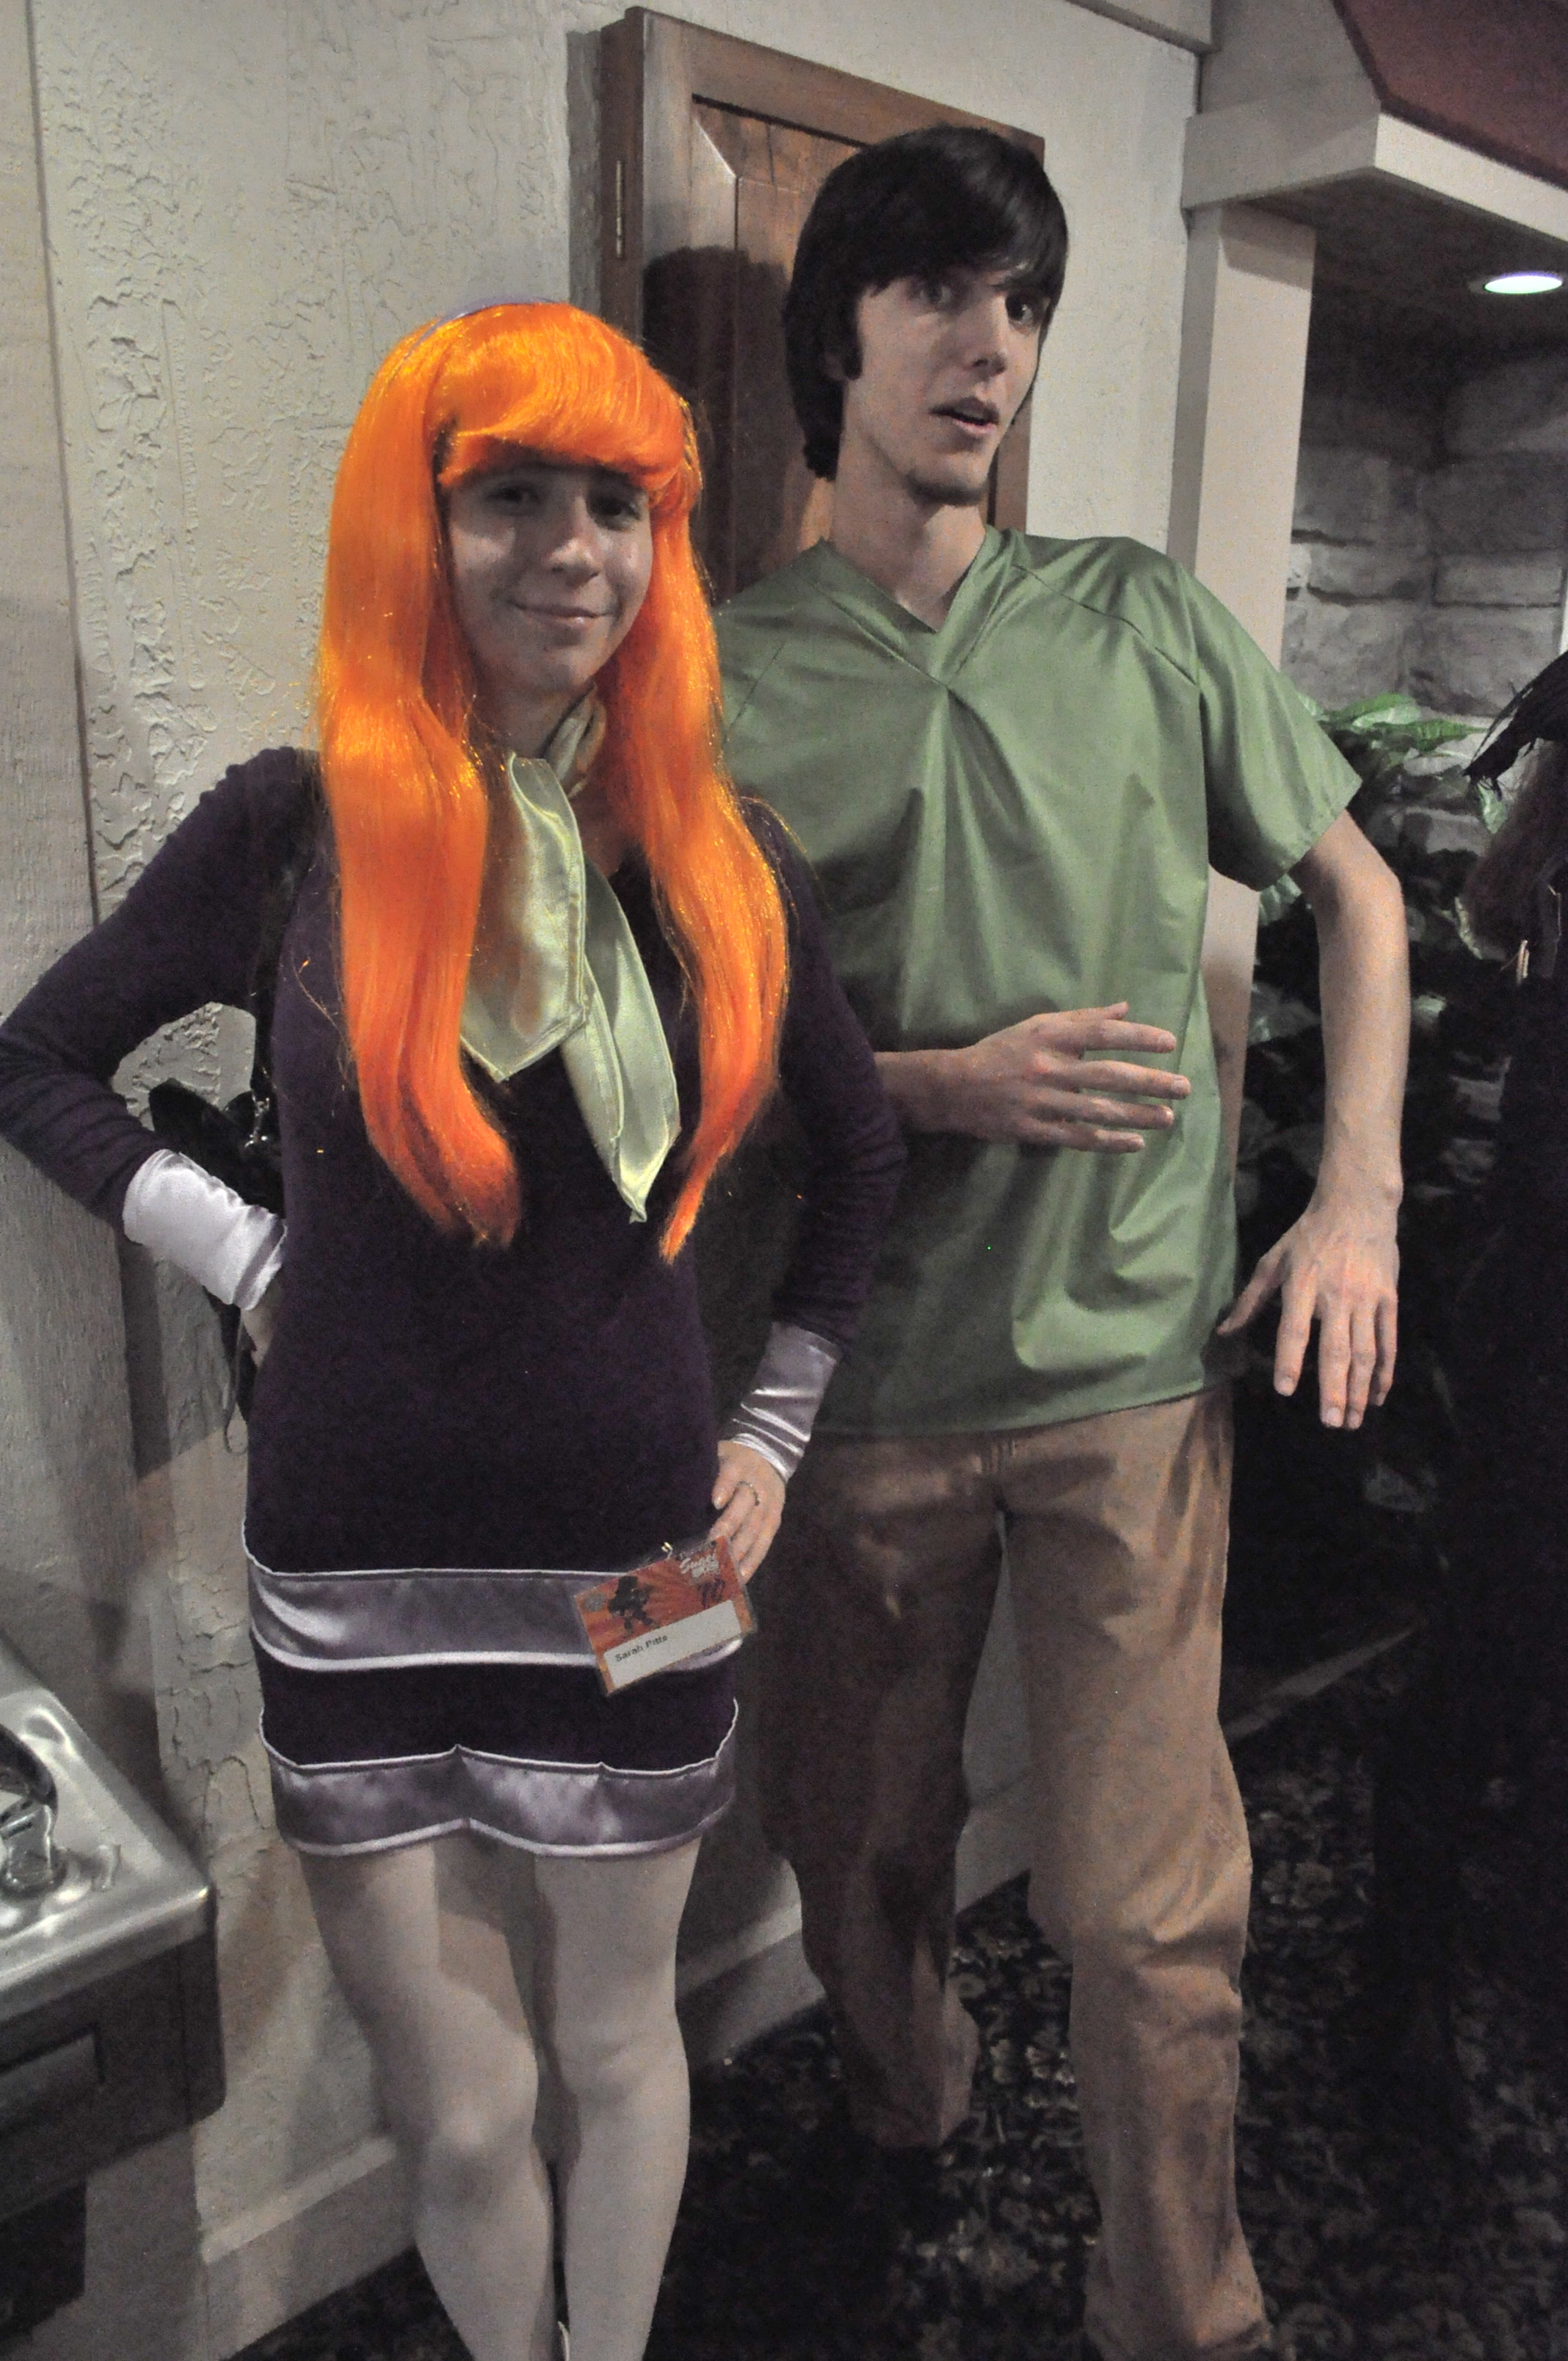 shaggy and daphne relationship